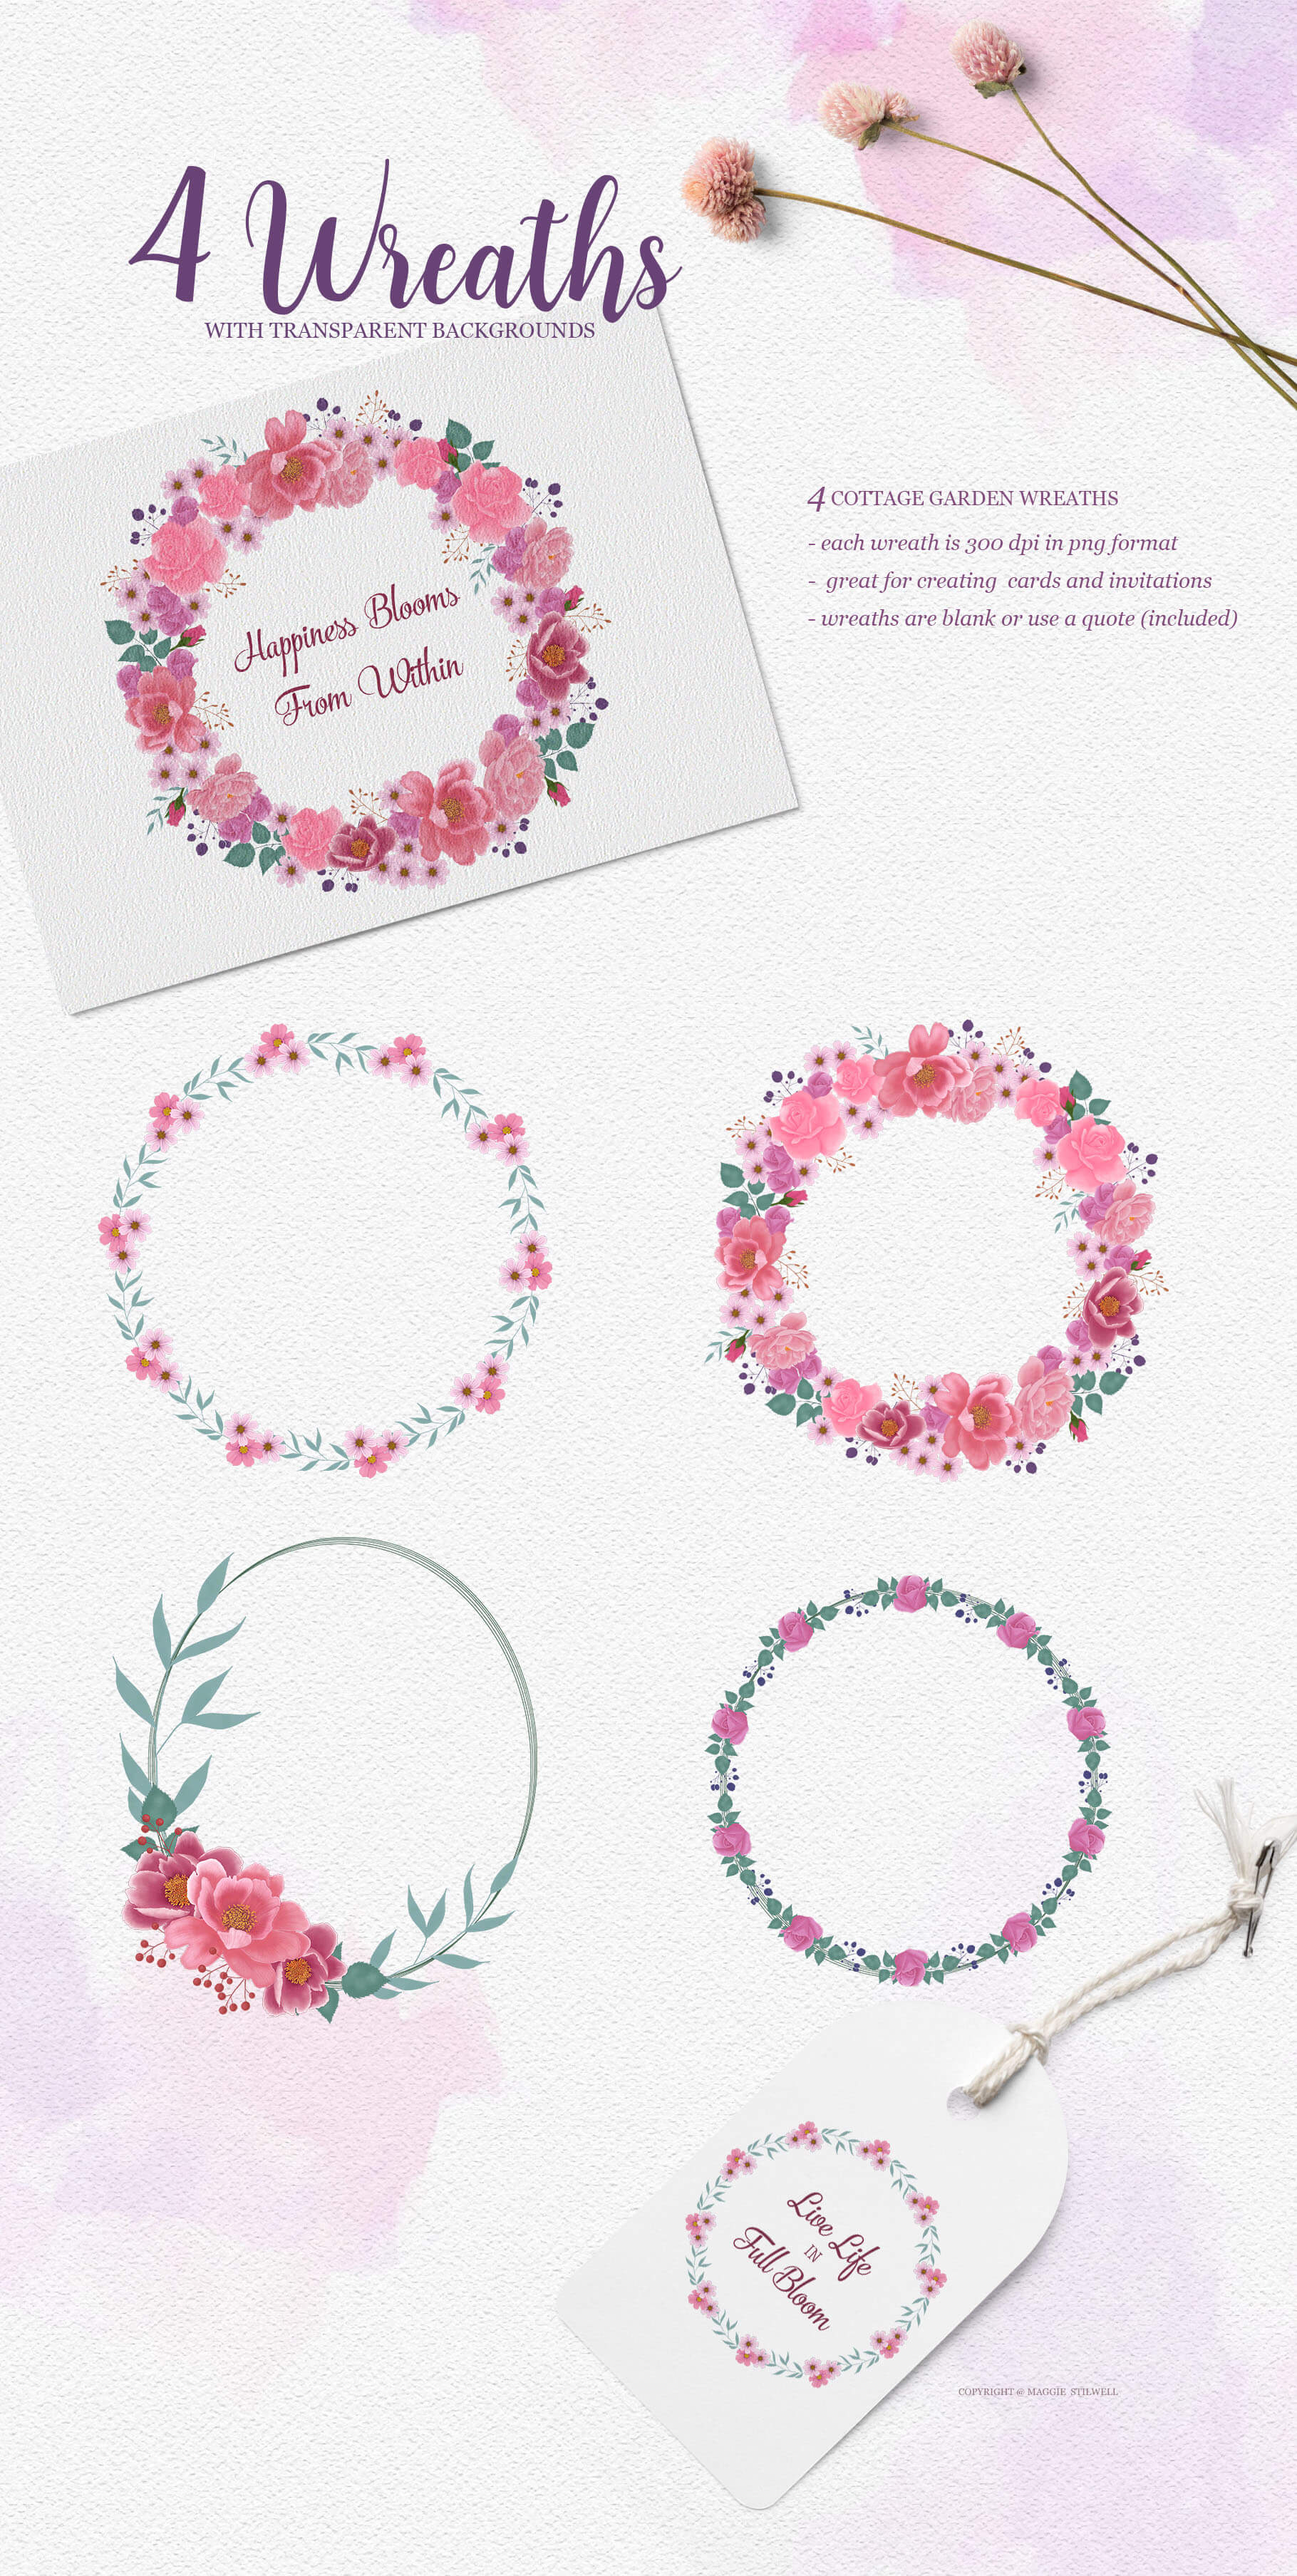 Country Garden Wreaths